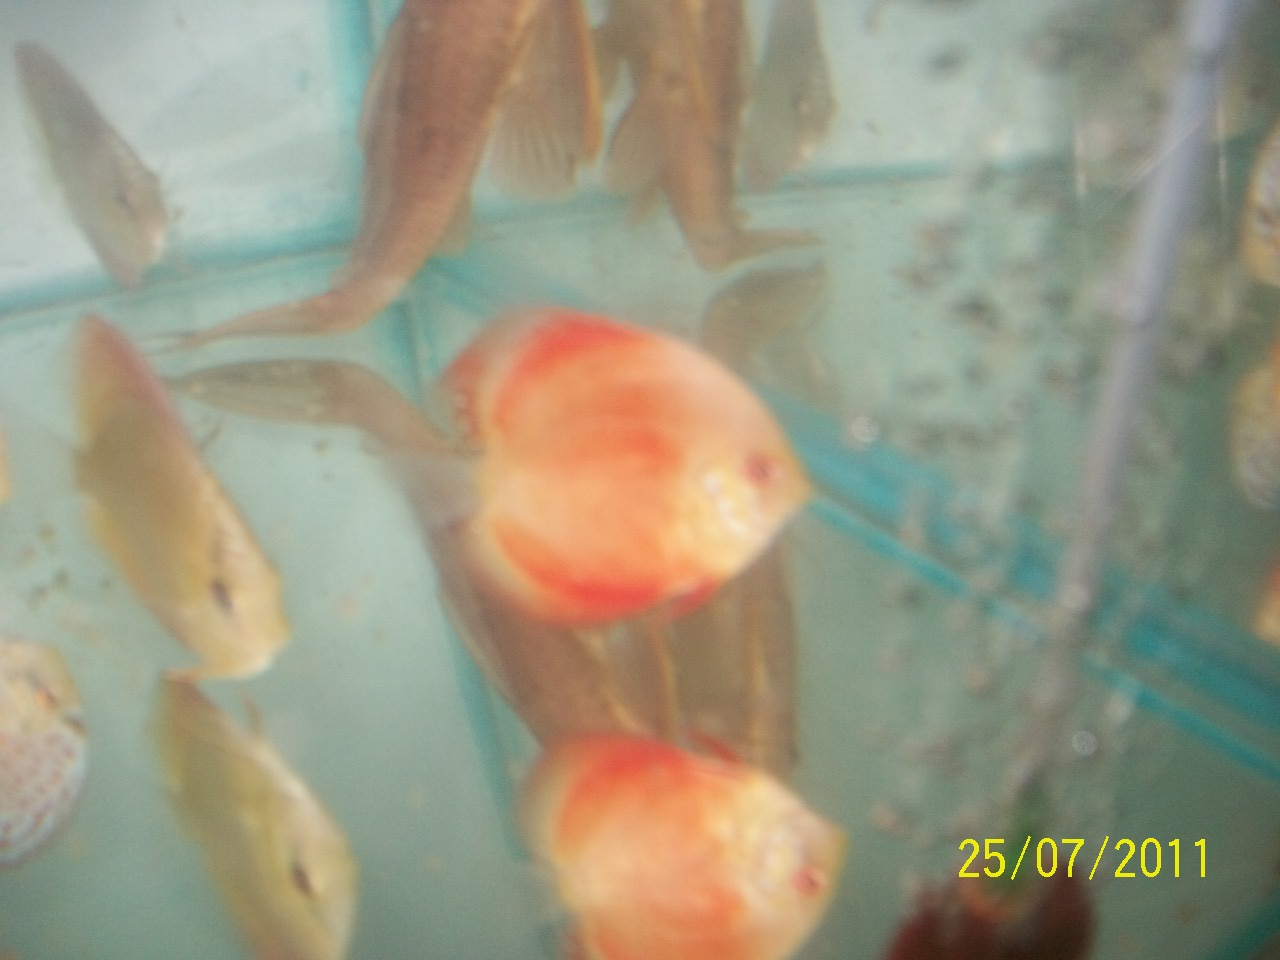 Discus fish for sale bangalore buy discus fish online for Fish for sale online